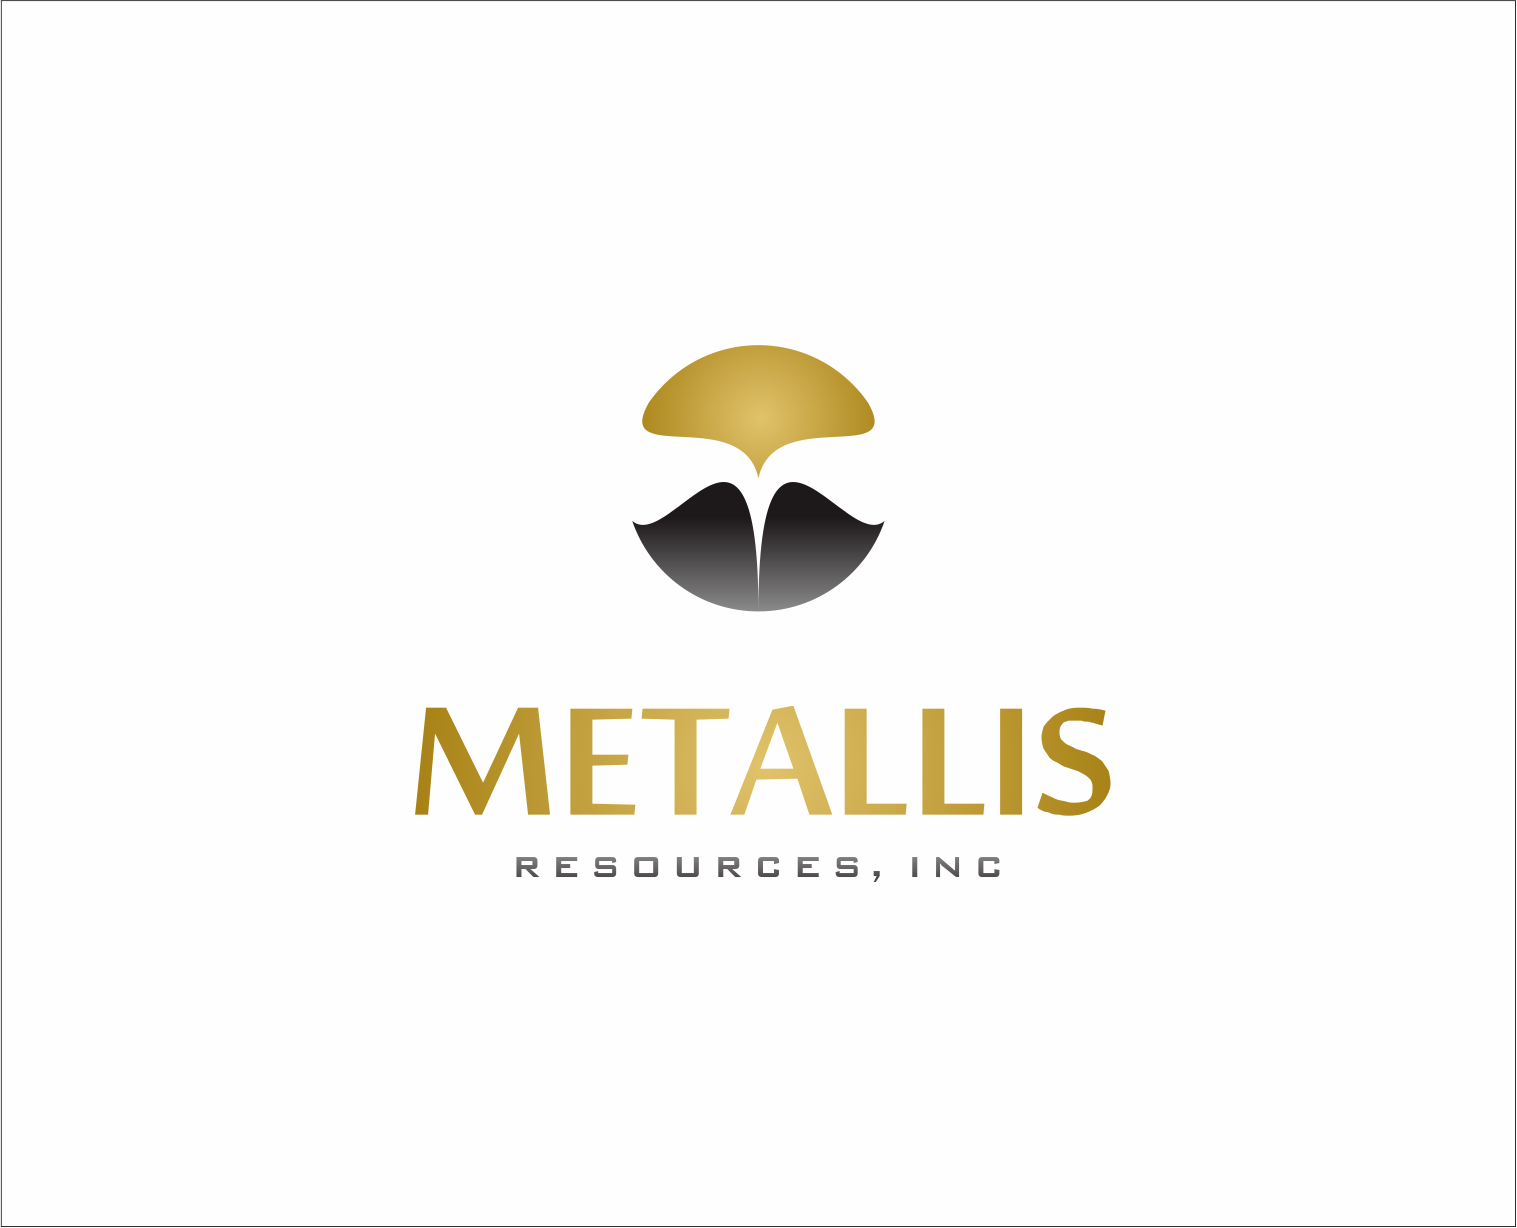 Logo Design by Armada Jamaluddin - Entry No. 141 in the Logo Design Contest Metallis Resources Inc Logo Design.